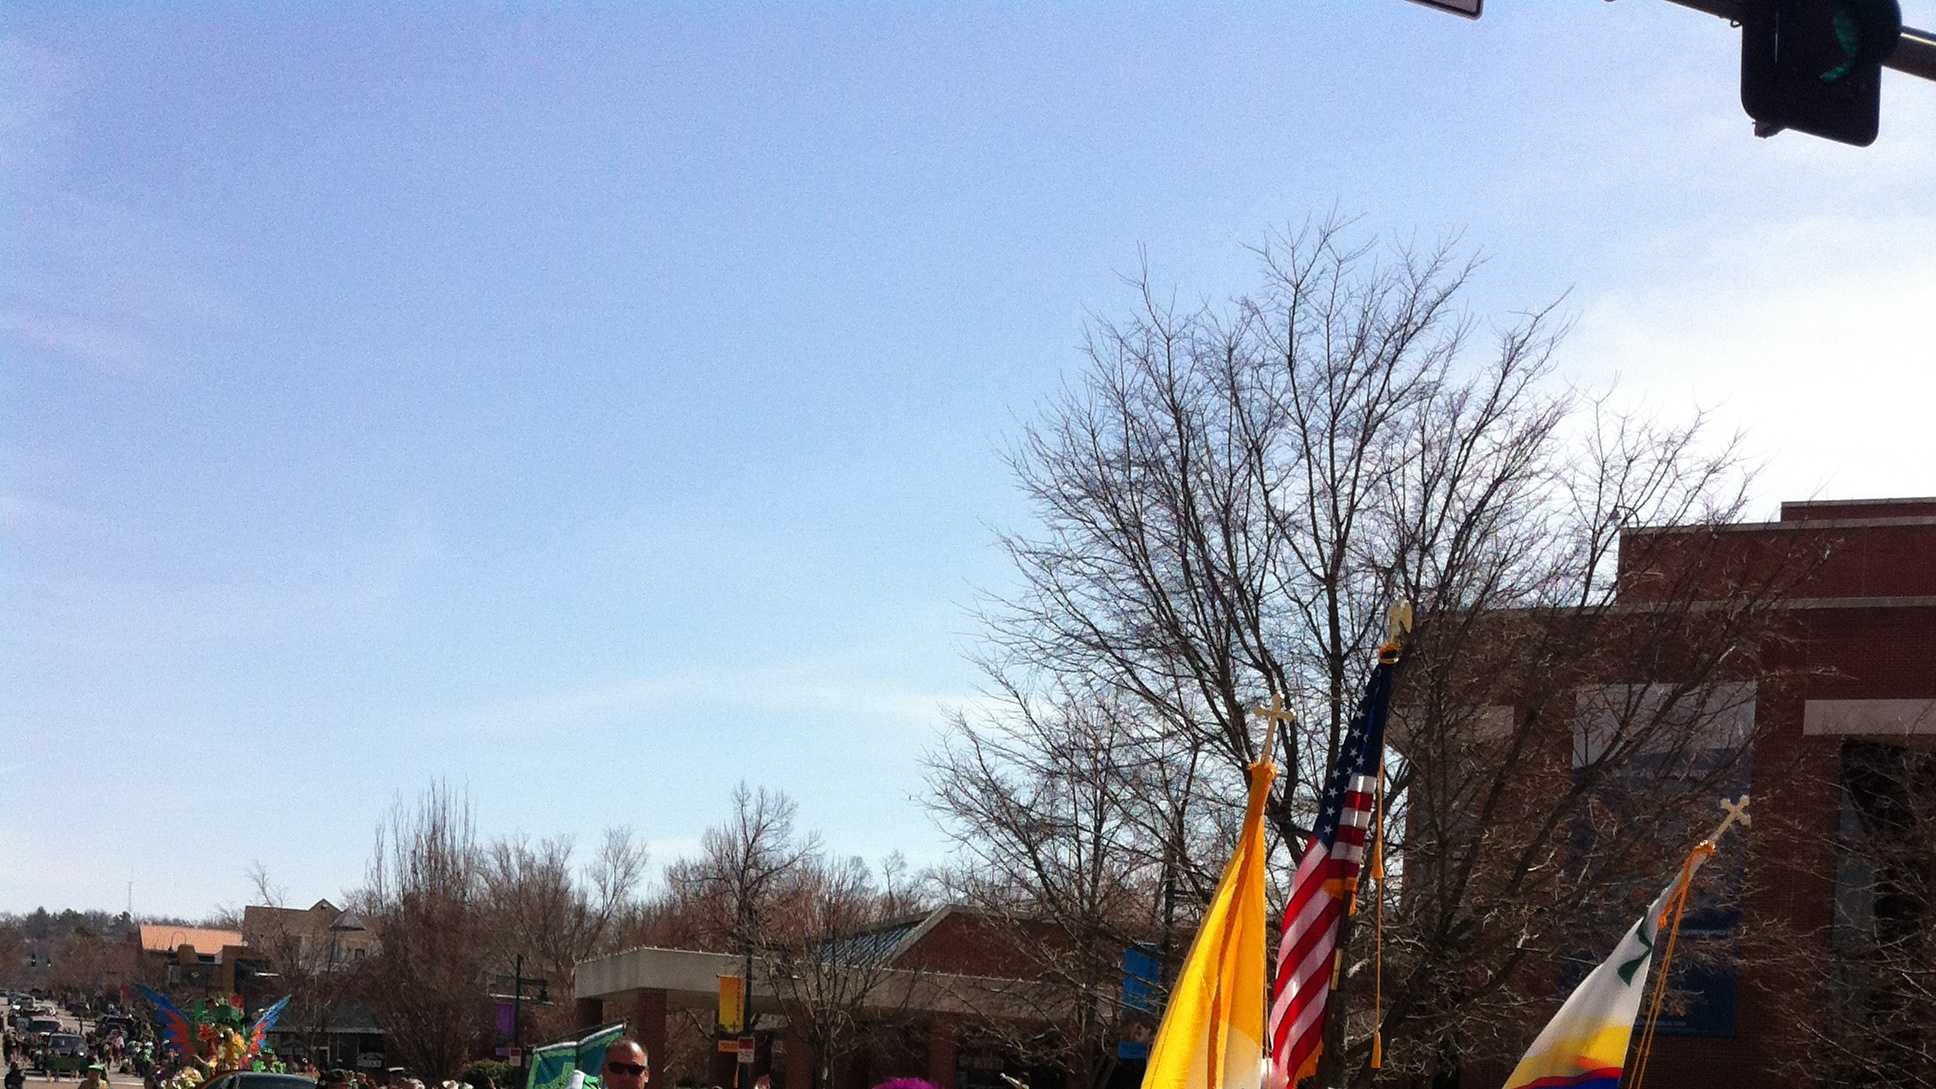 Flags missing from local parade